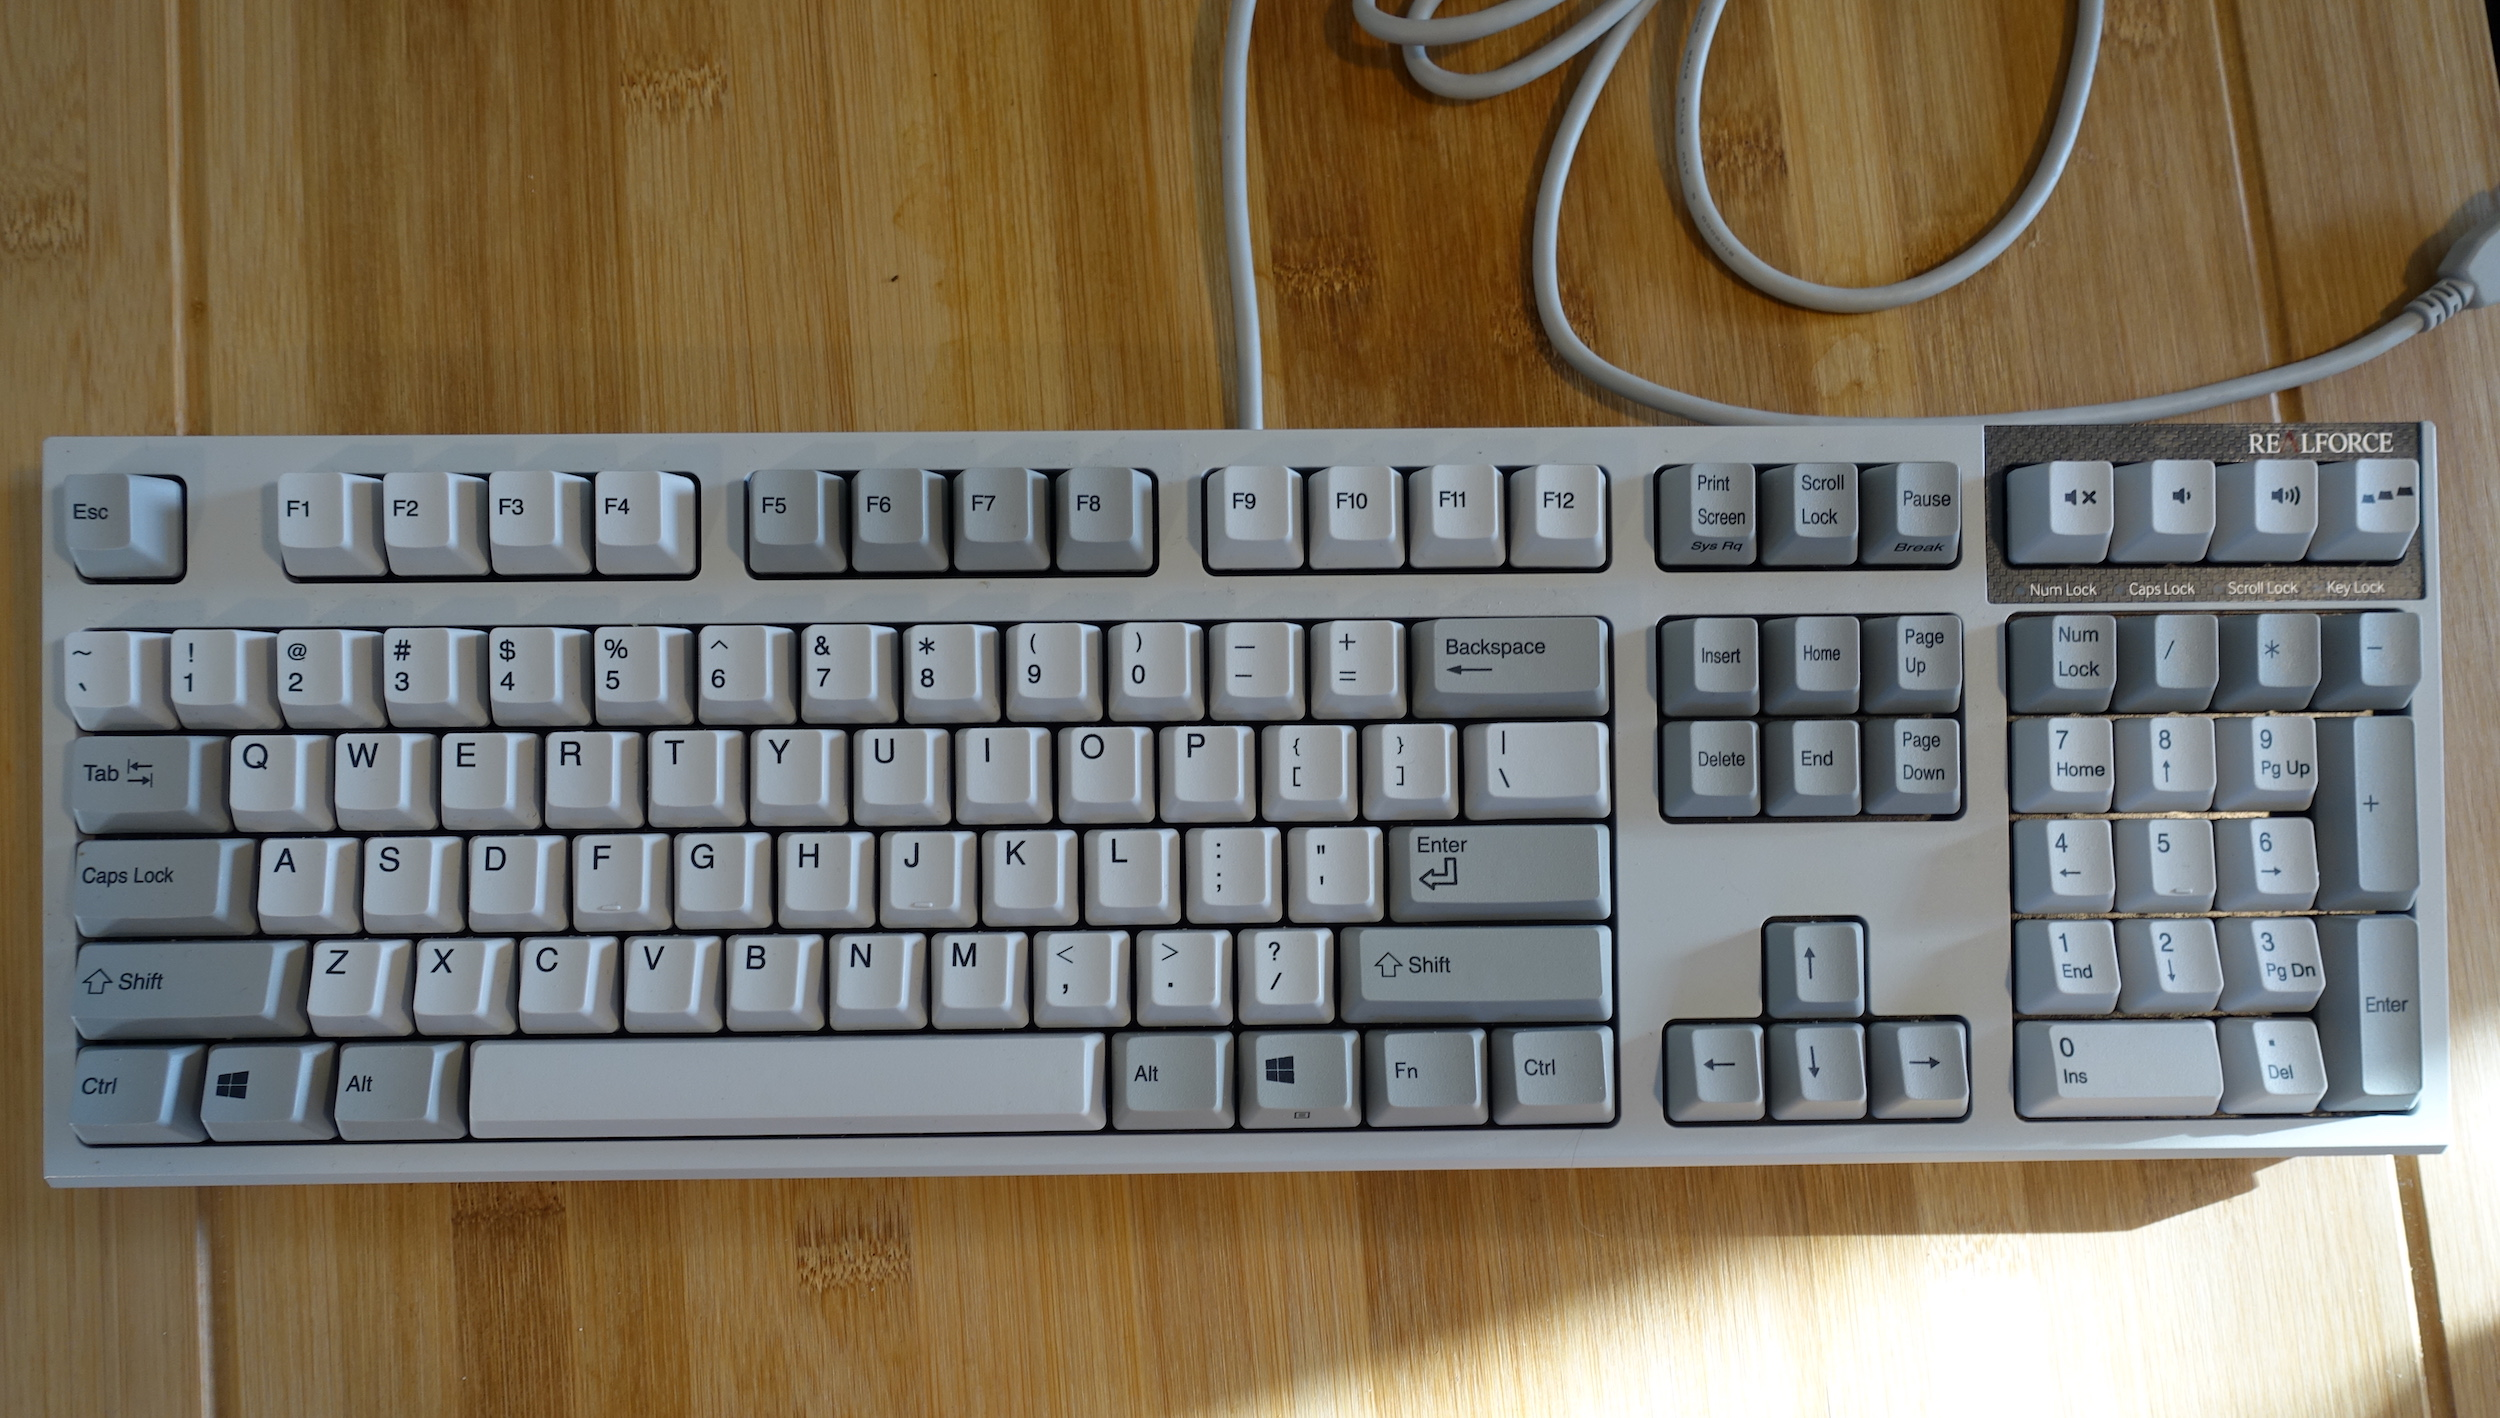 Jeff Dunn's Topre Realforce. Though it has a 10-key pad, he doesn't use it exclusively.